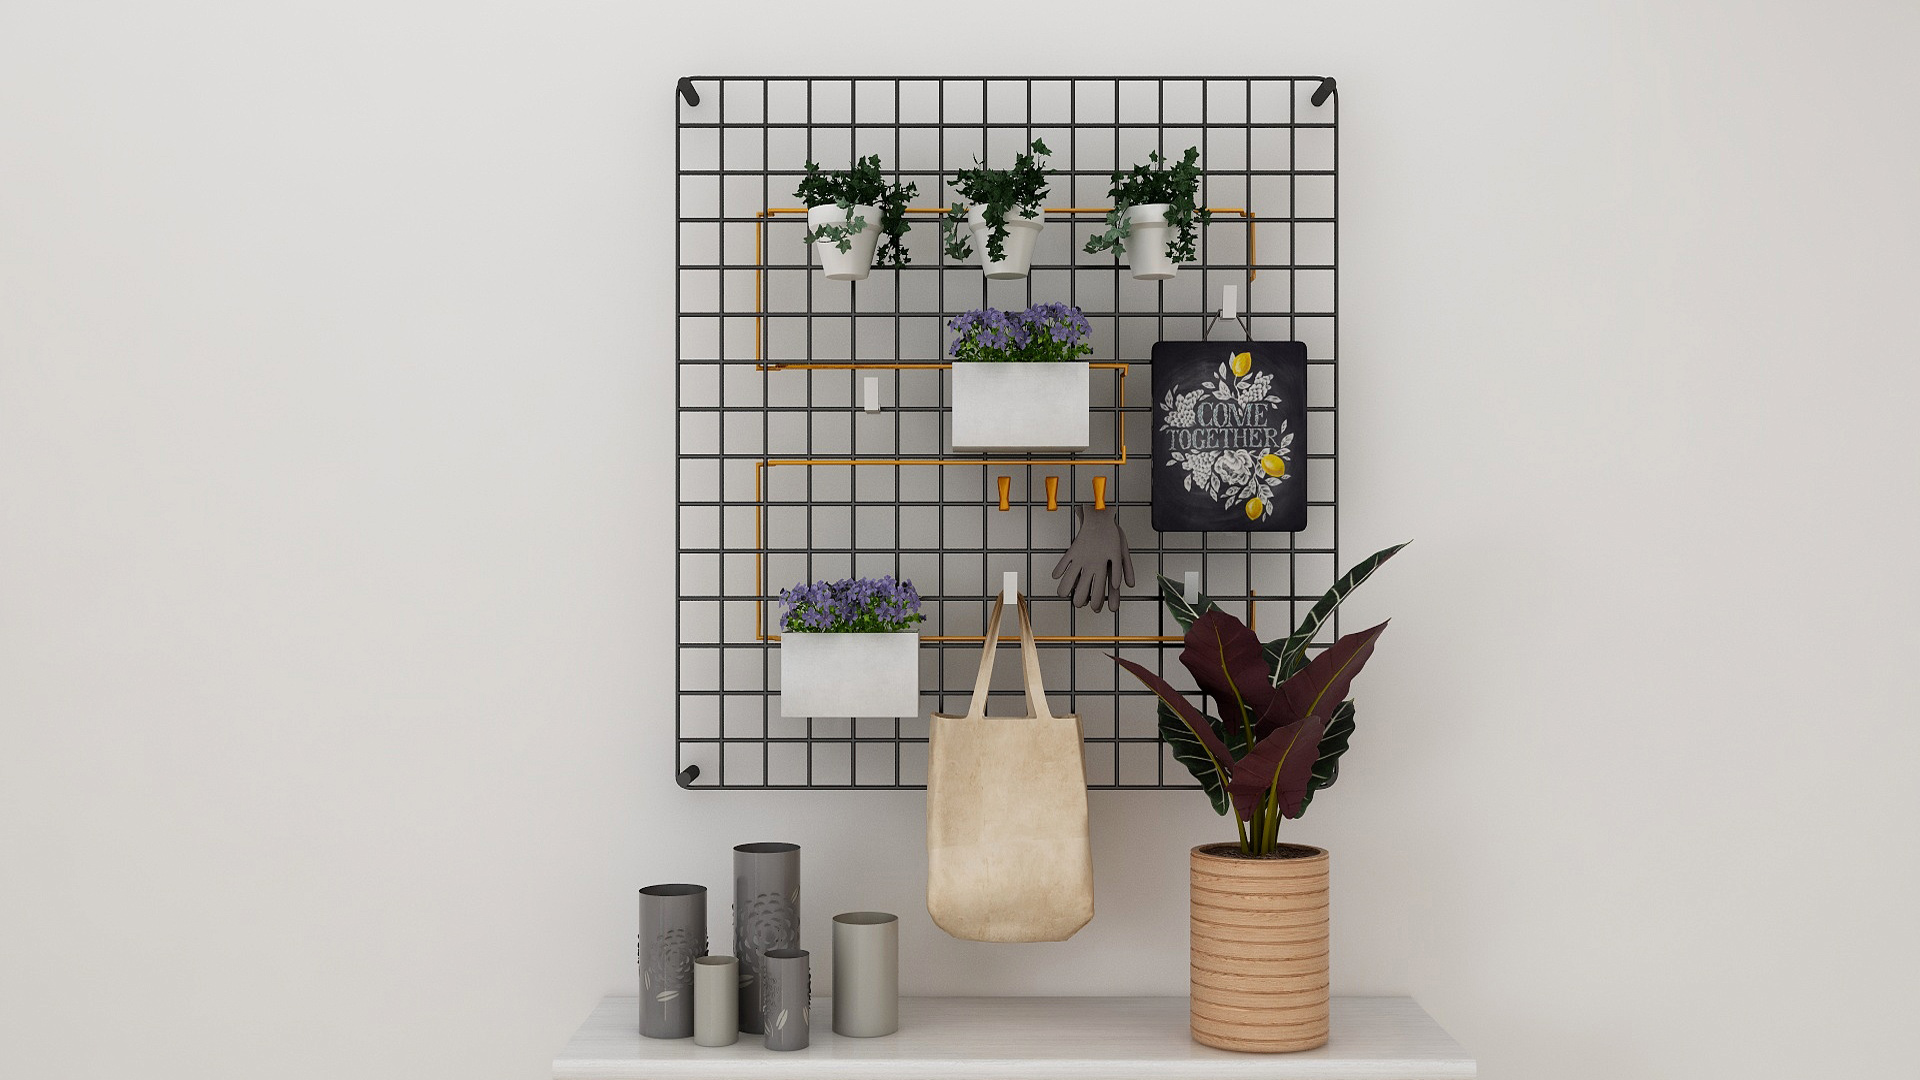 A metal mesh grid repurposed as a Nordic-inspired wall decorative with potted plants